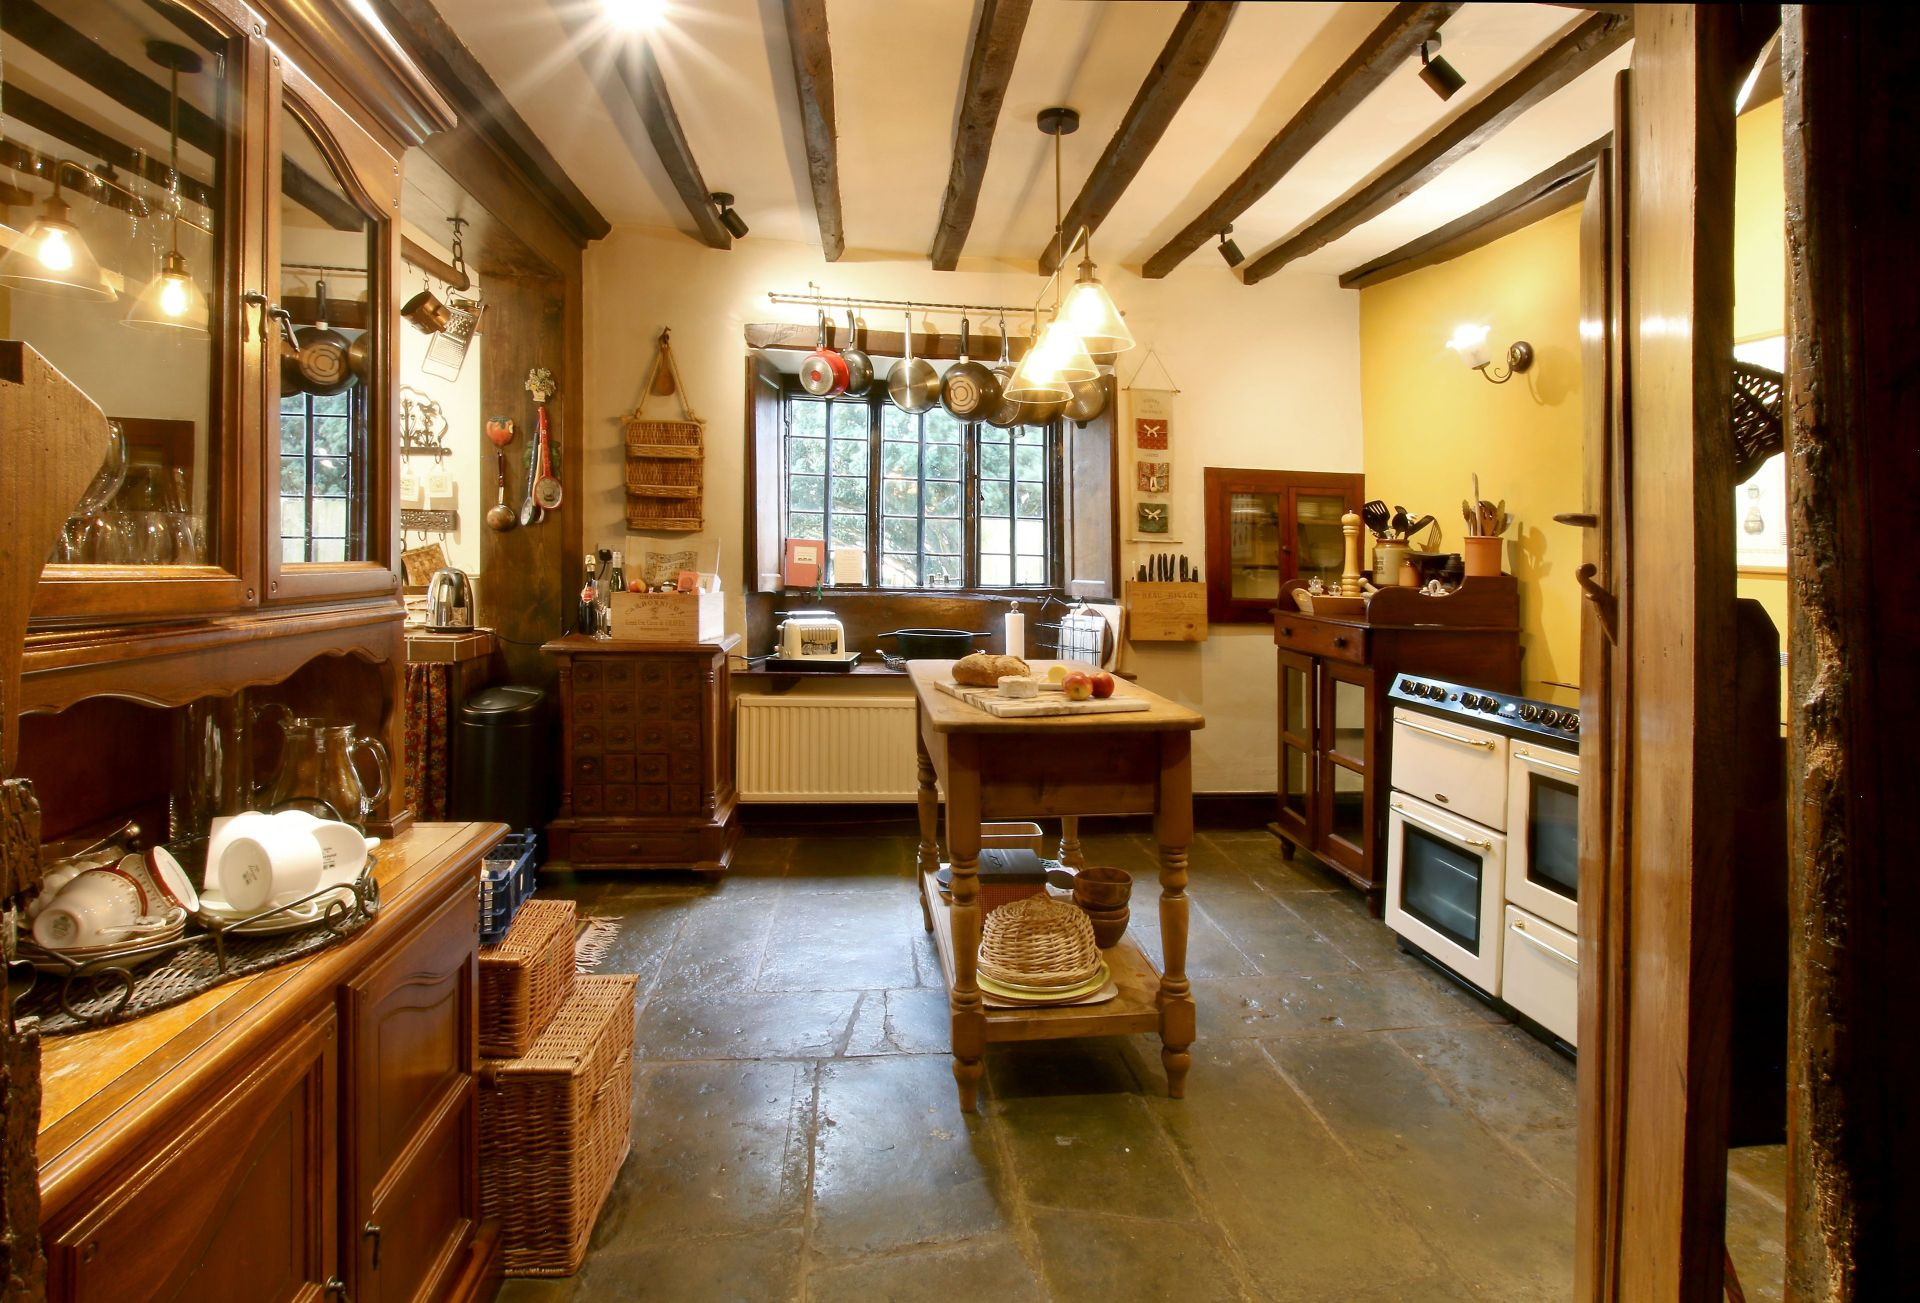 A viGround floor:  Characterful, country kitchen with traditional pantry